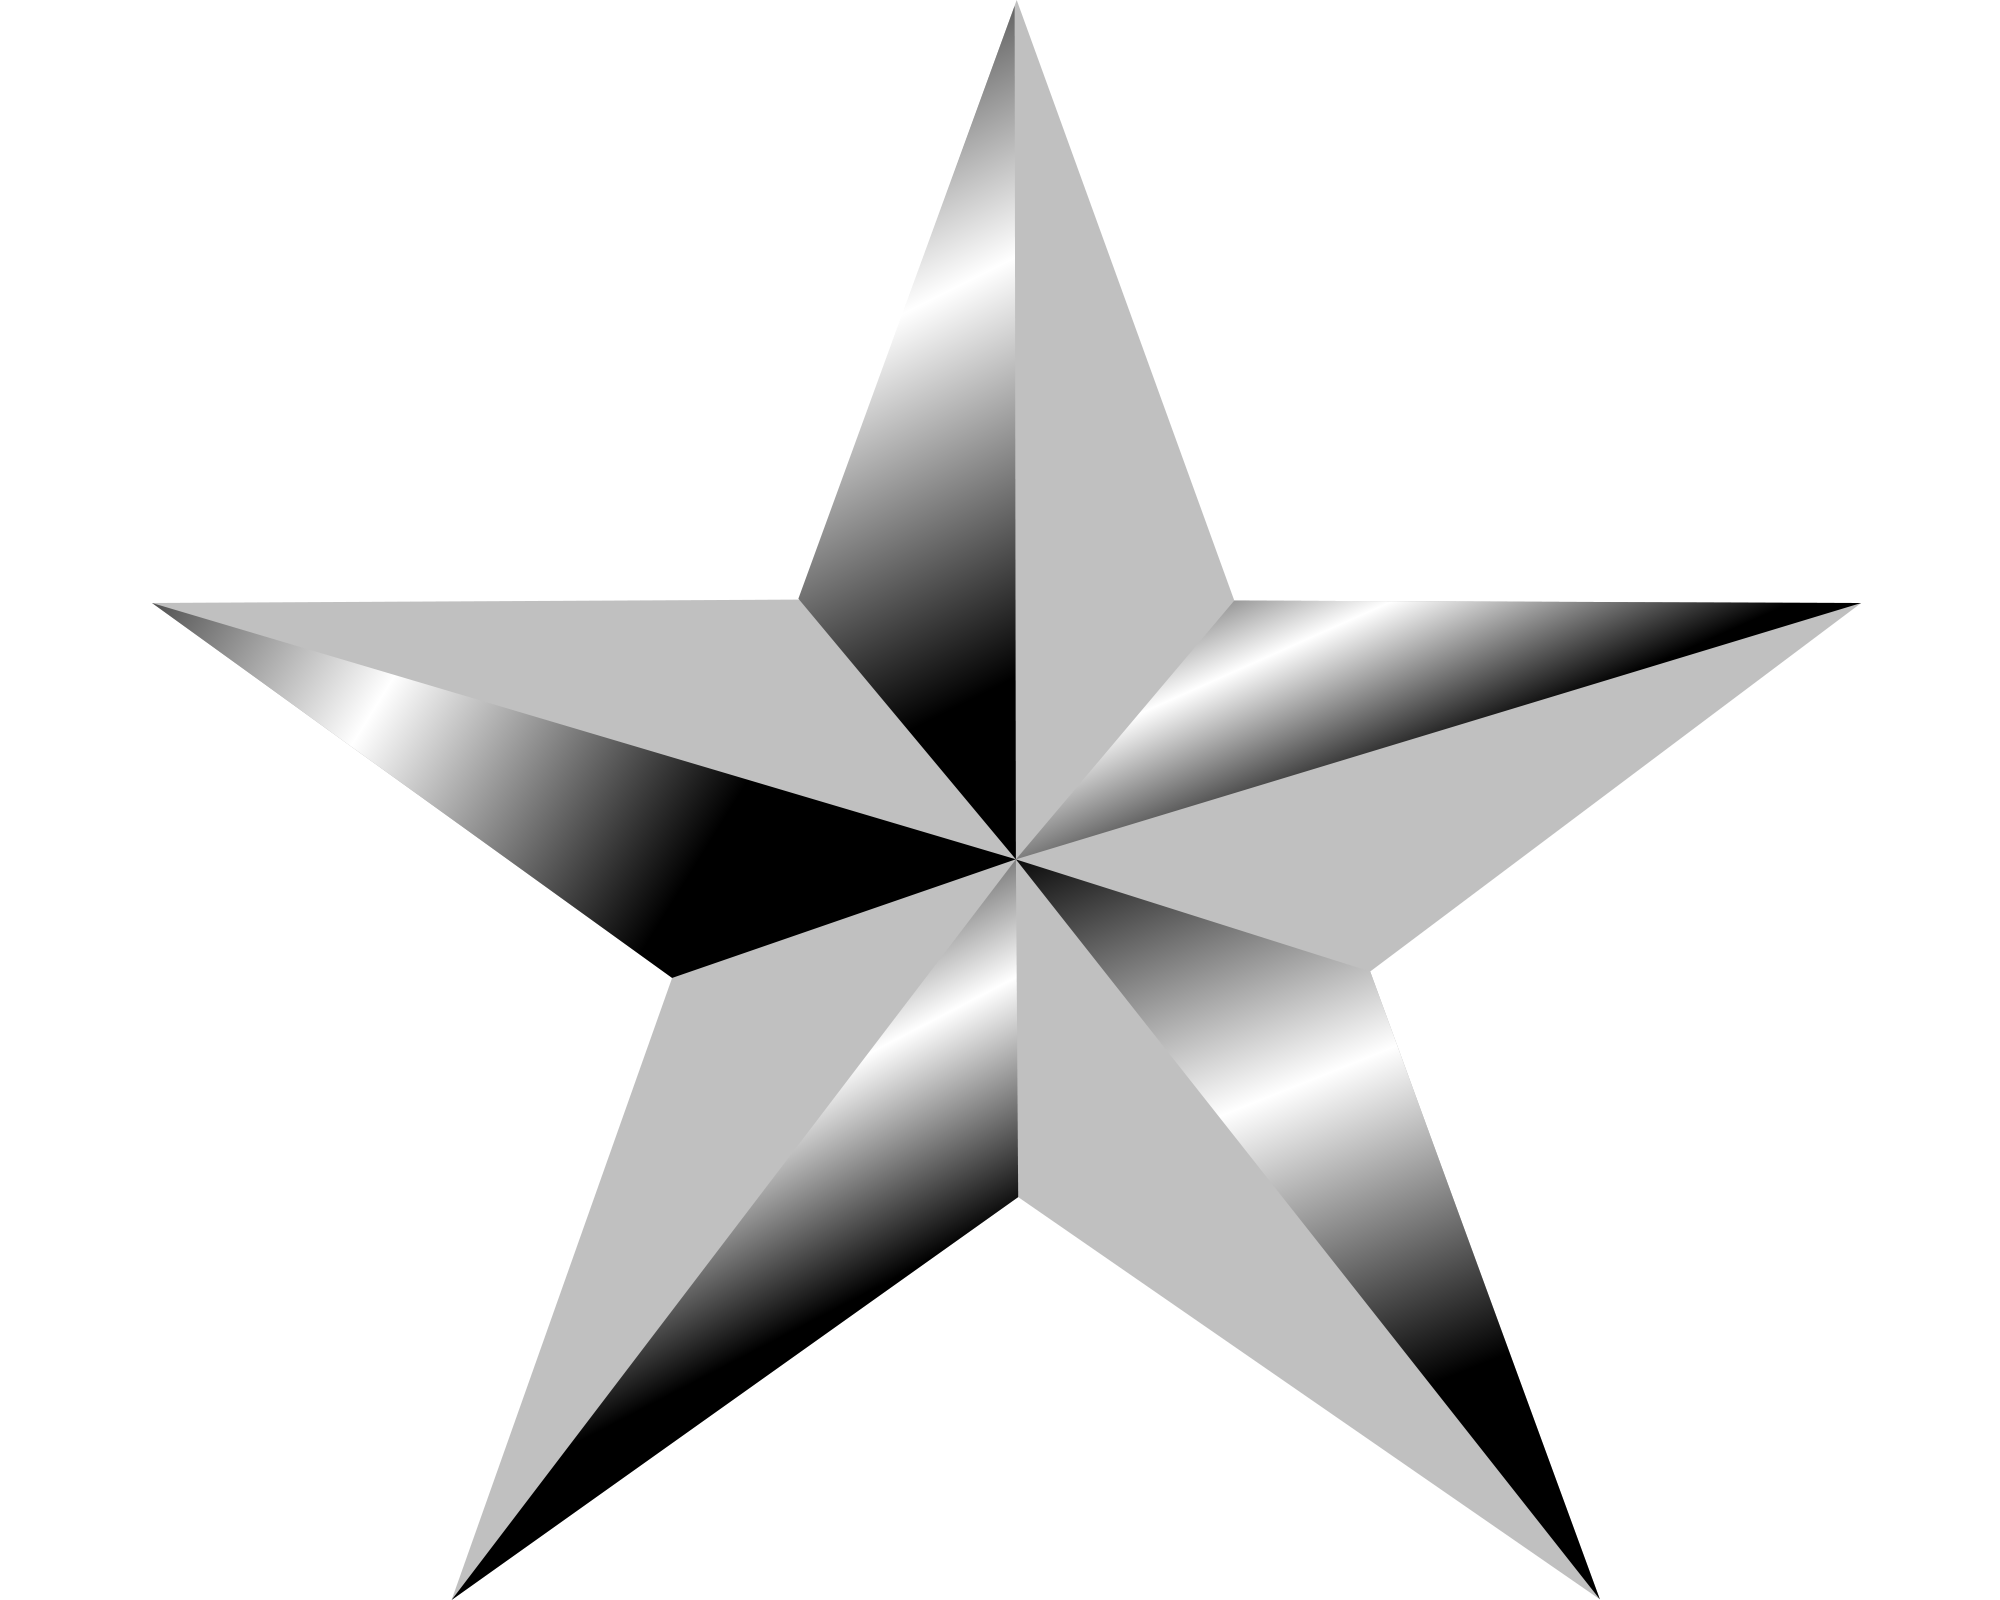 Air force star clipart jpg library download Silver Star PNG Image - PurePNG | Free transparent CC0 PNG Image Library jpg library download